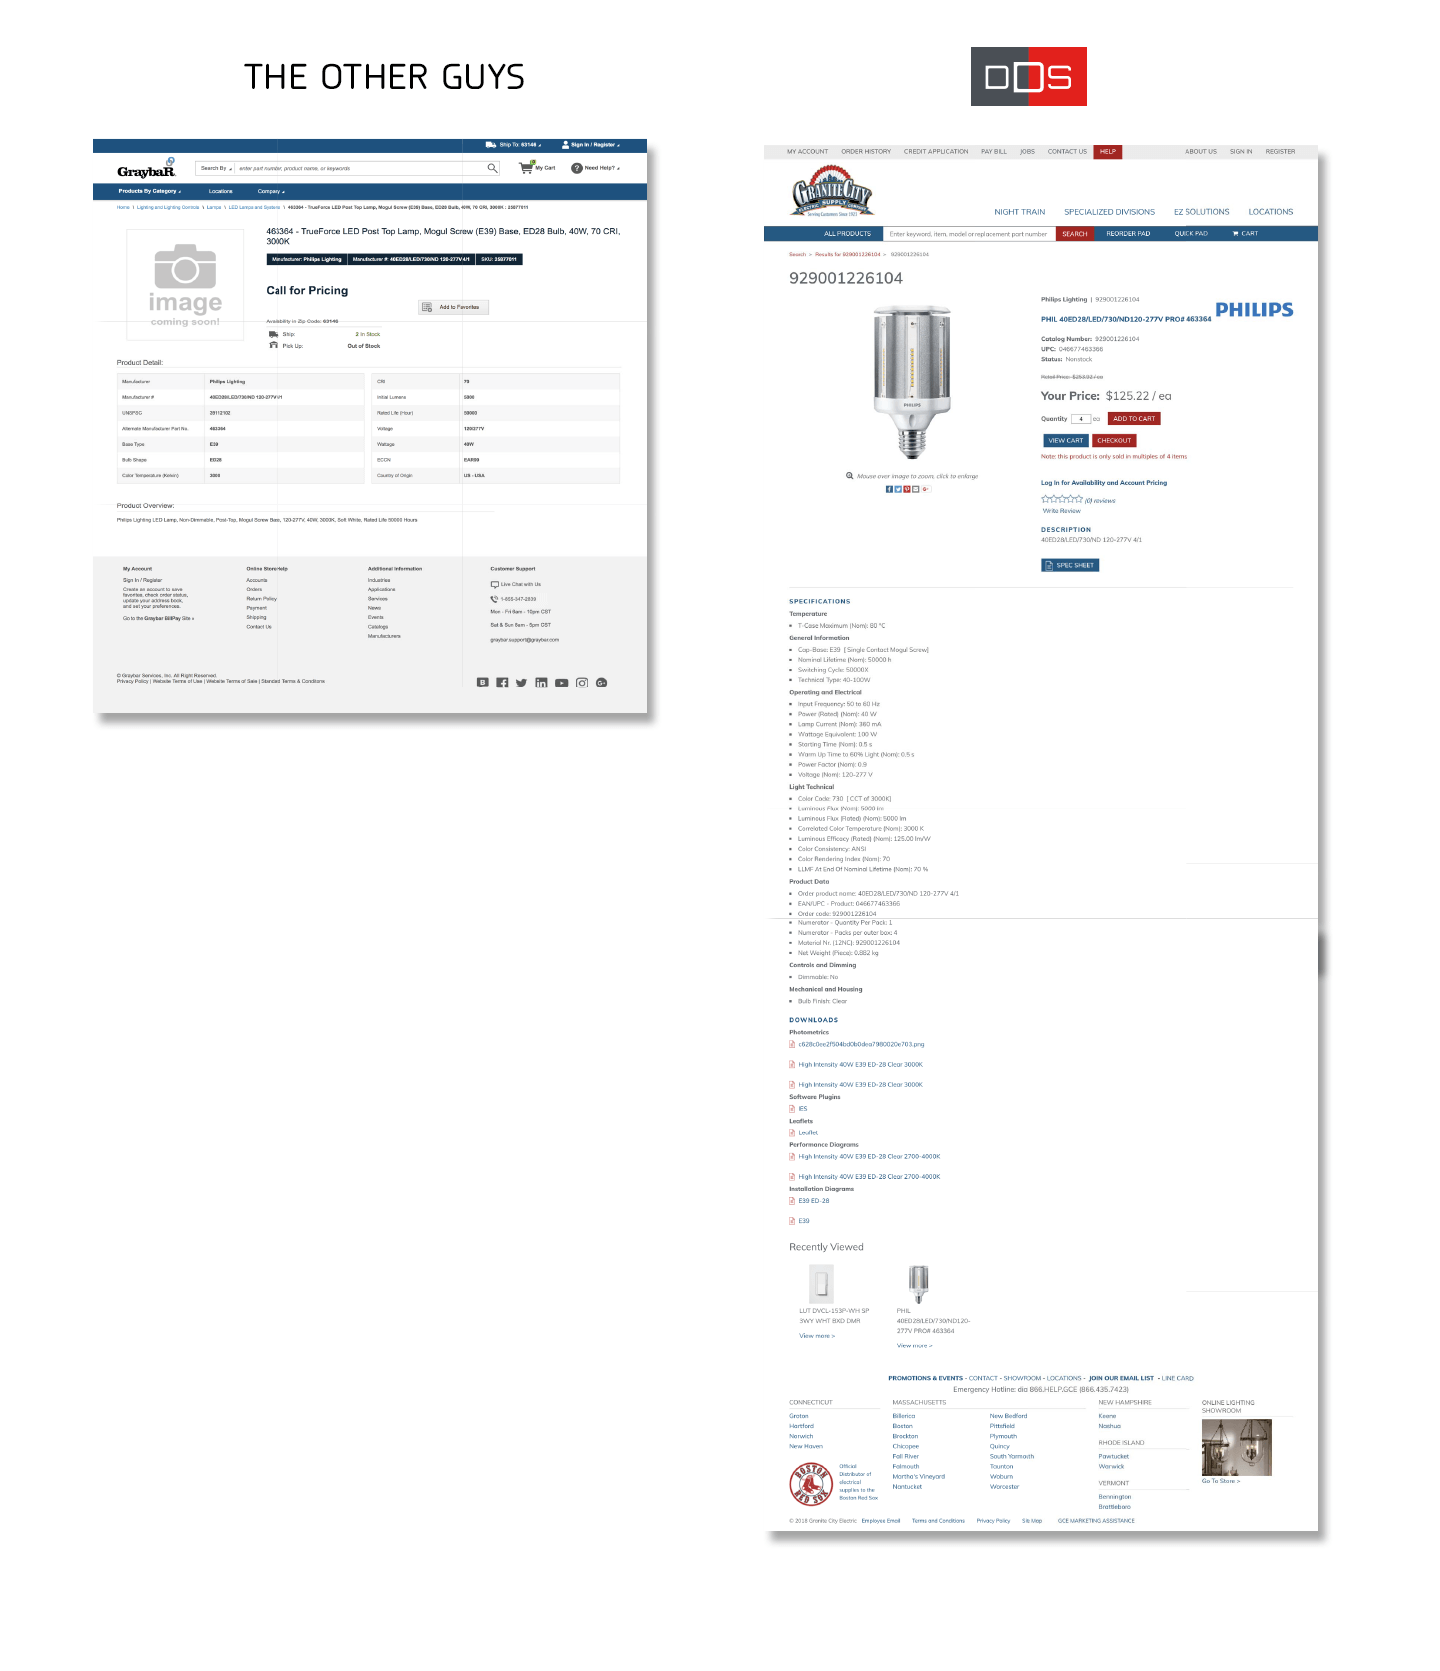 DDS Product Comparison-Signify